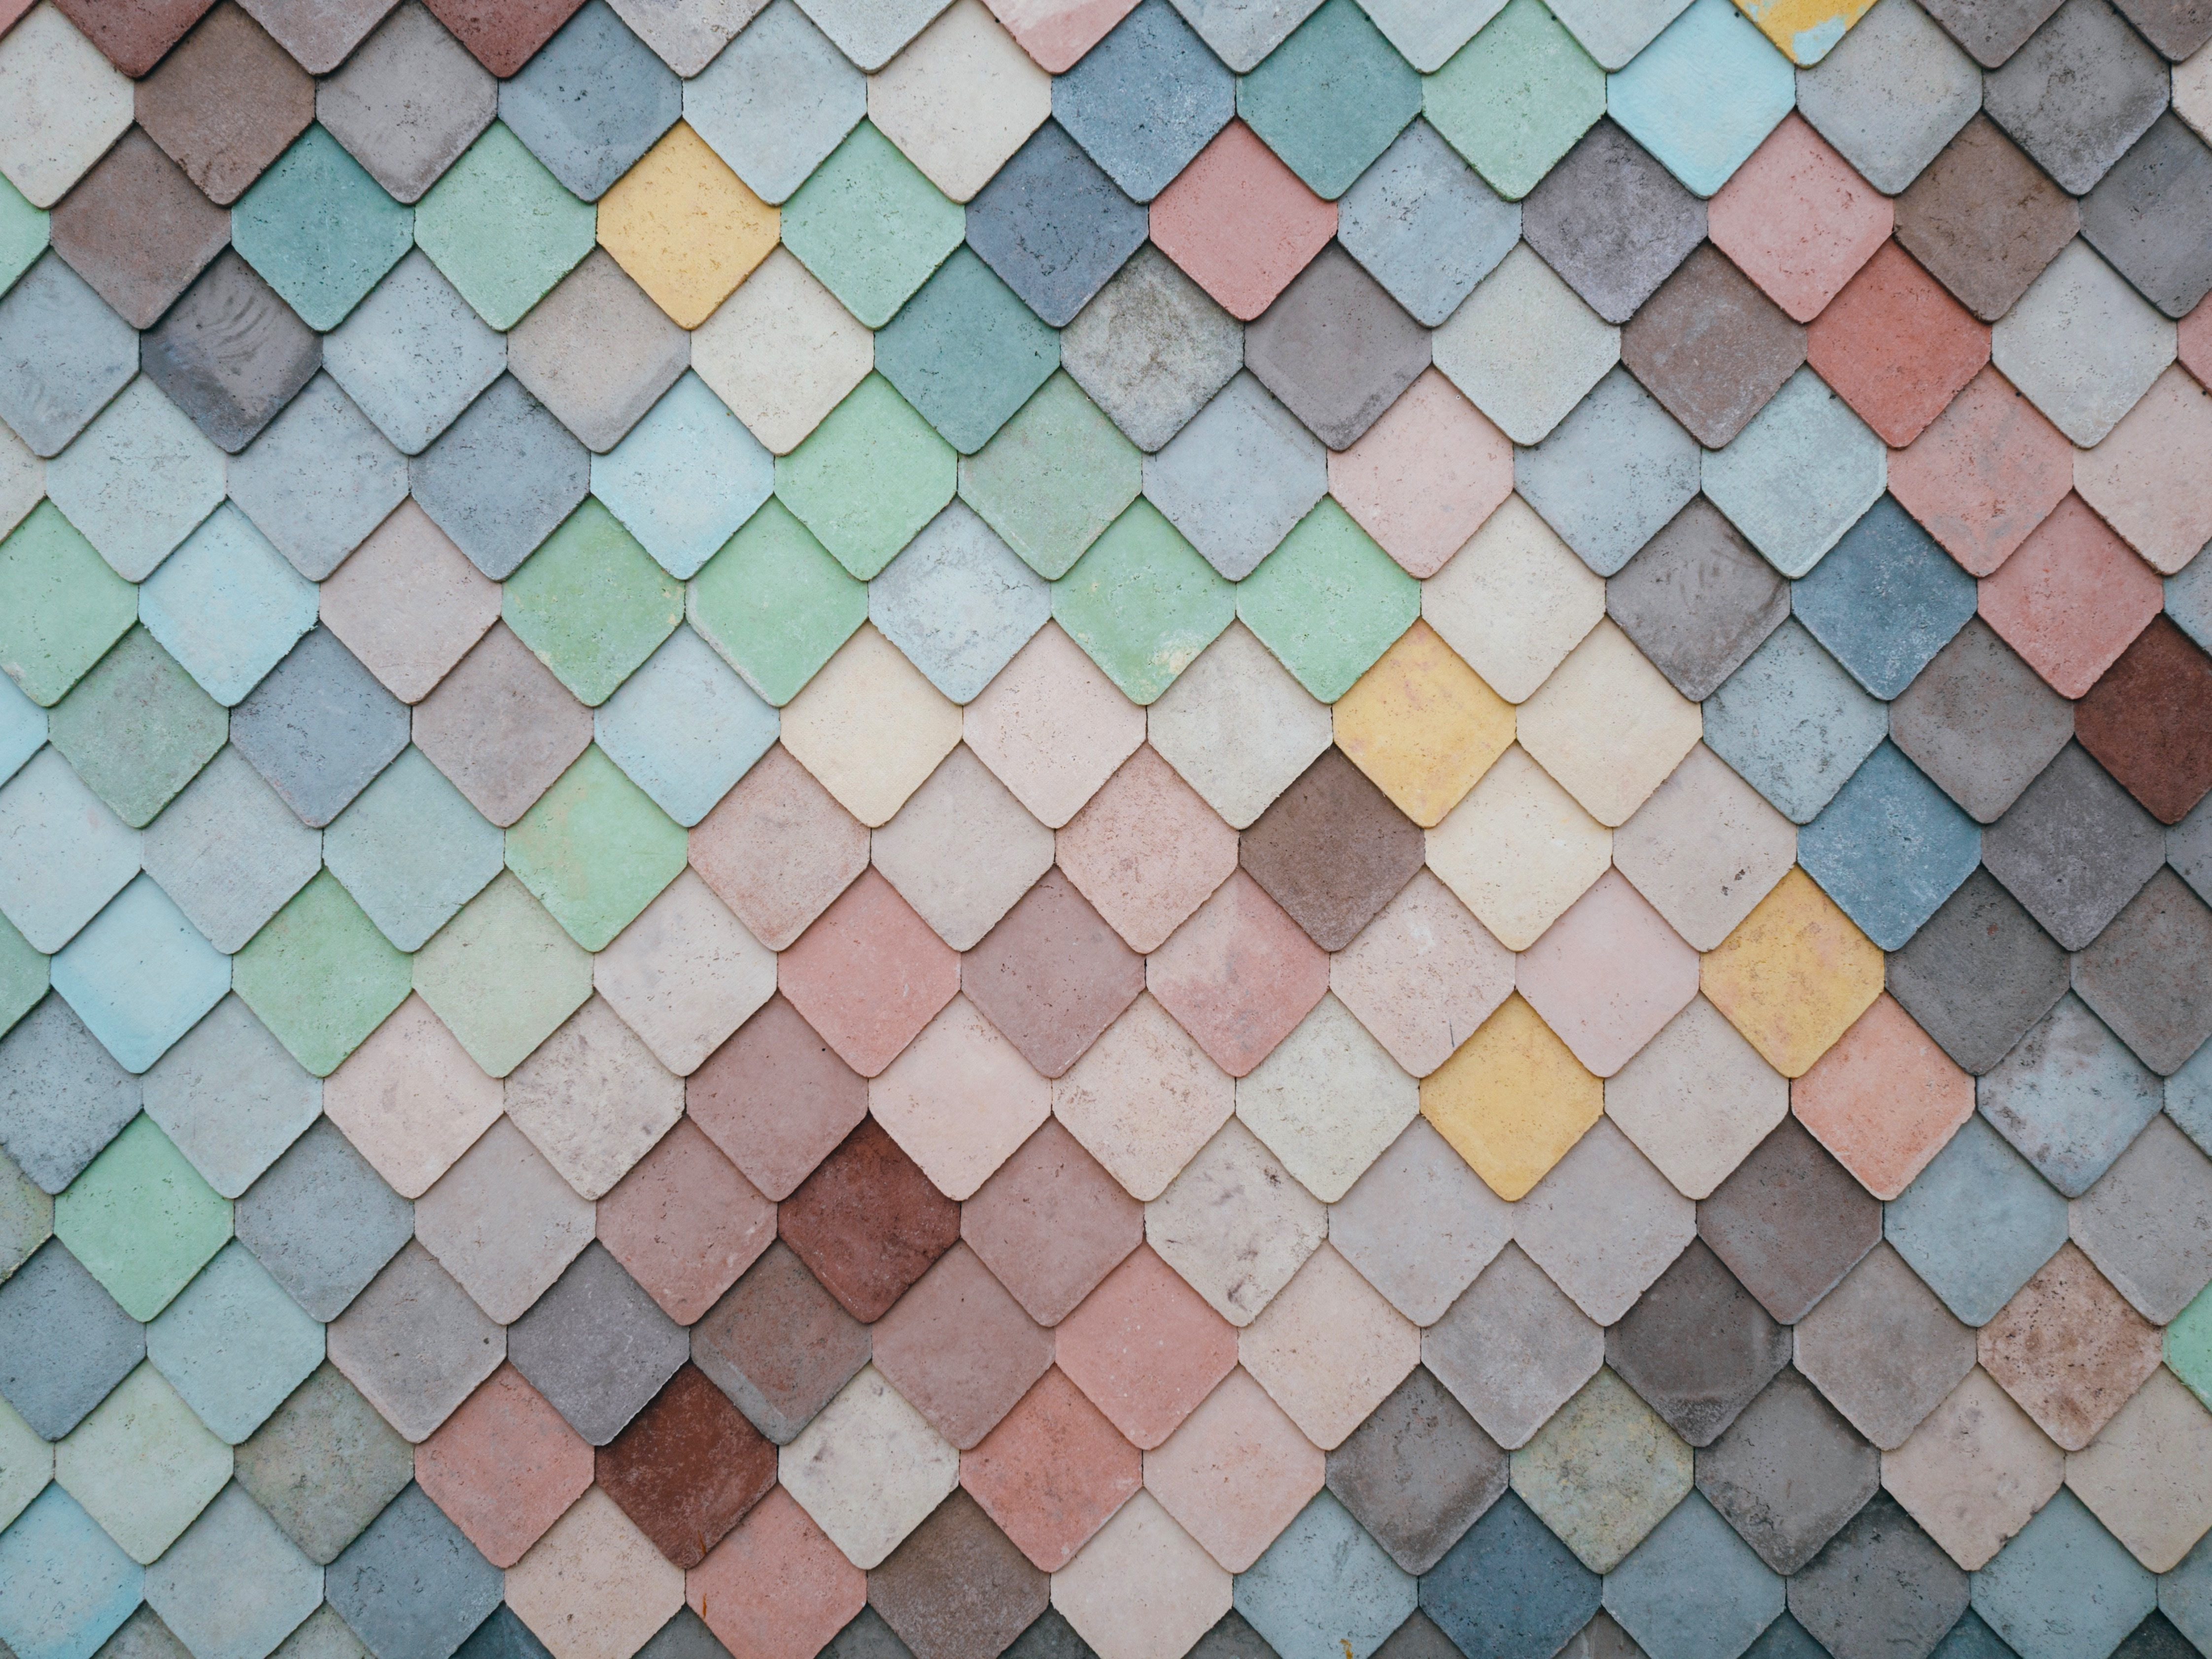 tiles of color